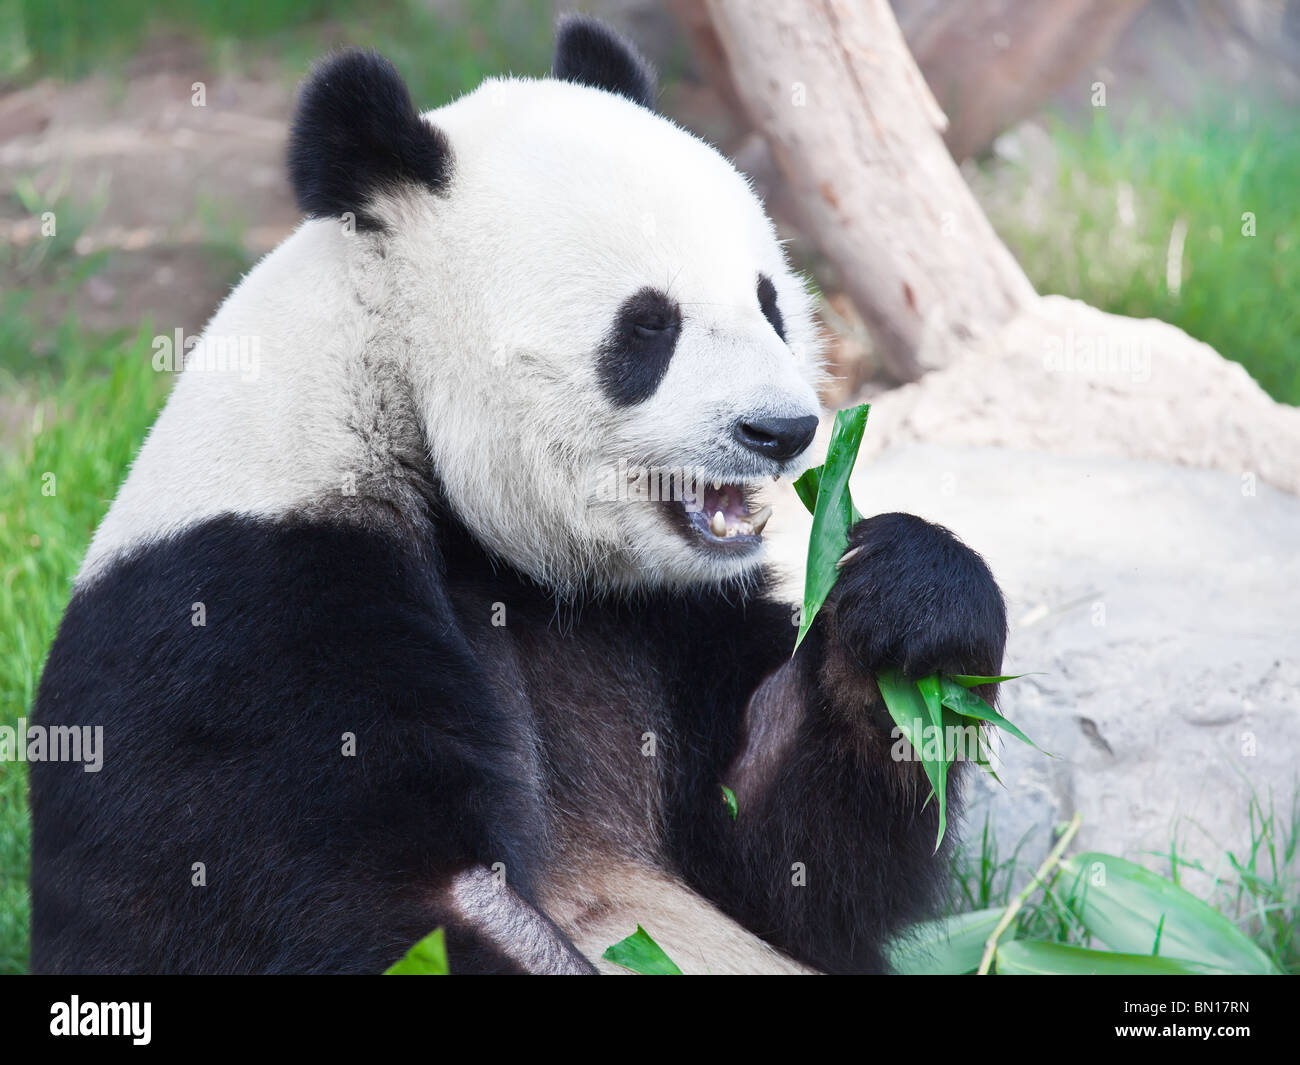 Giant panda is eating green bamboo leaf - Stock Image